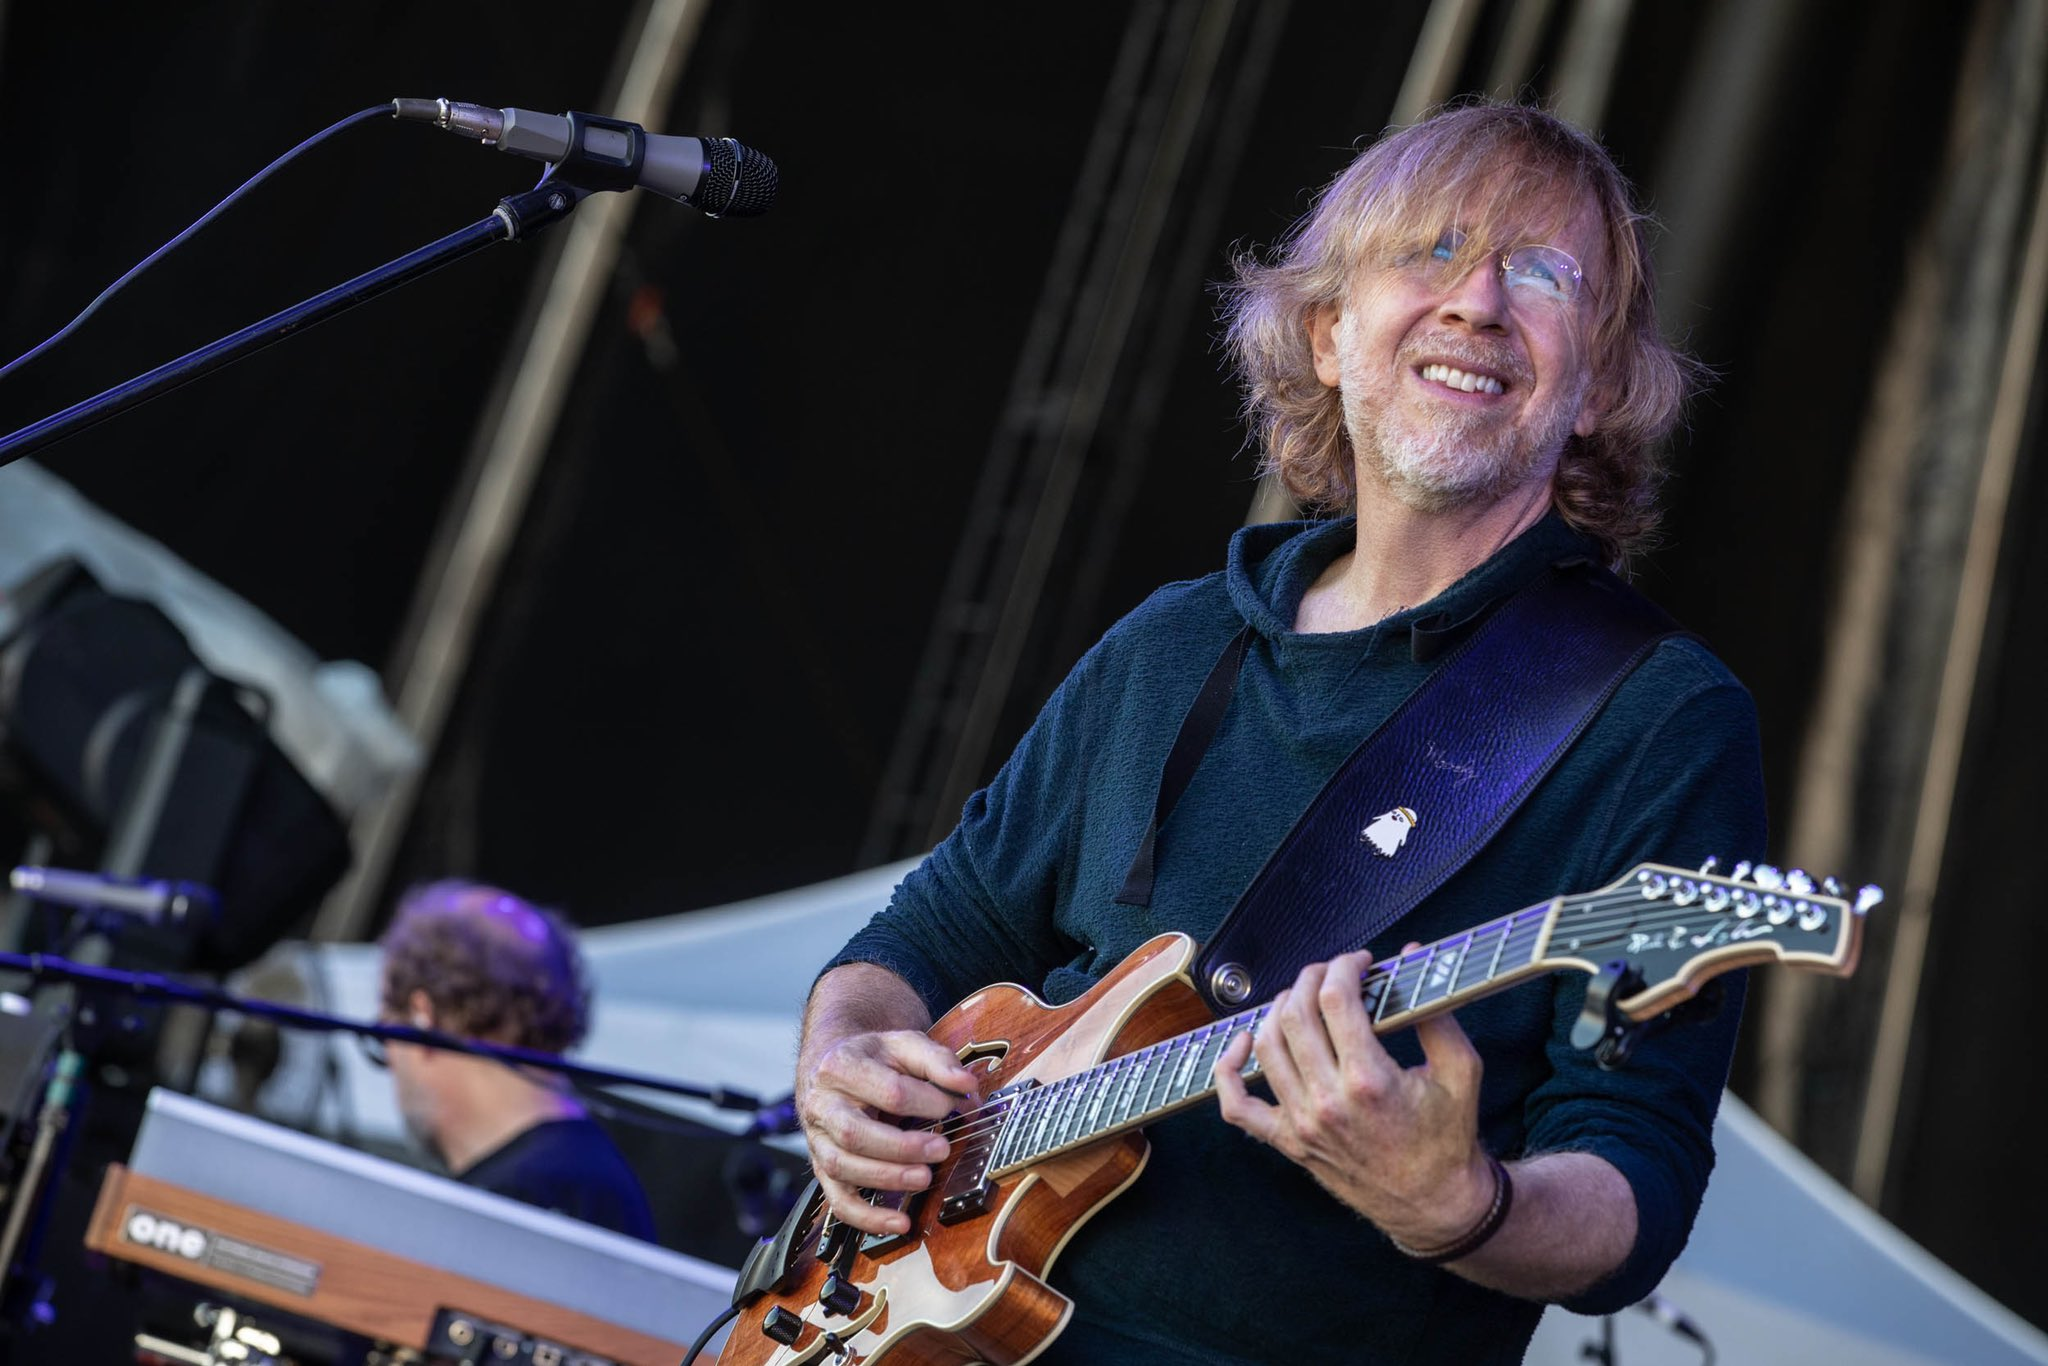 © 2021 Phish - Rene Huemer (used with permission)